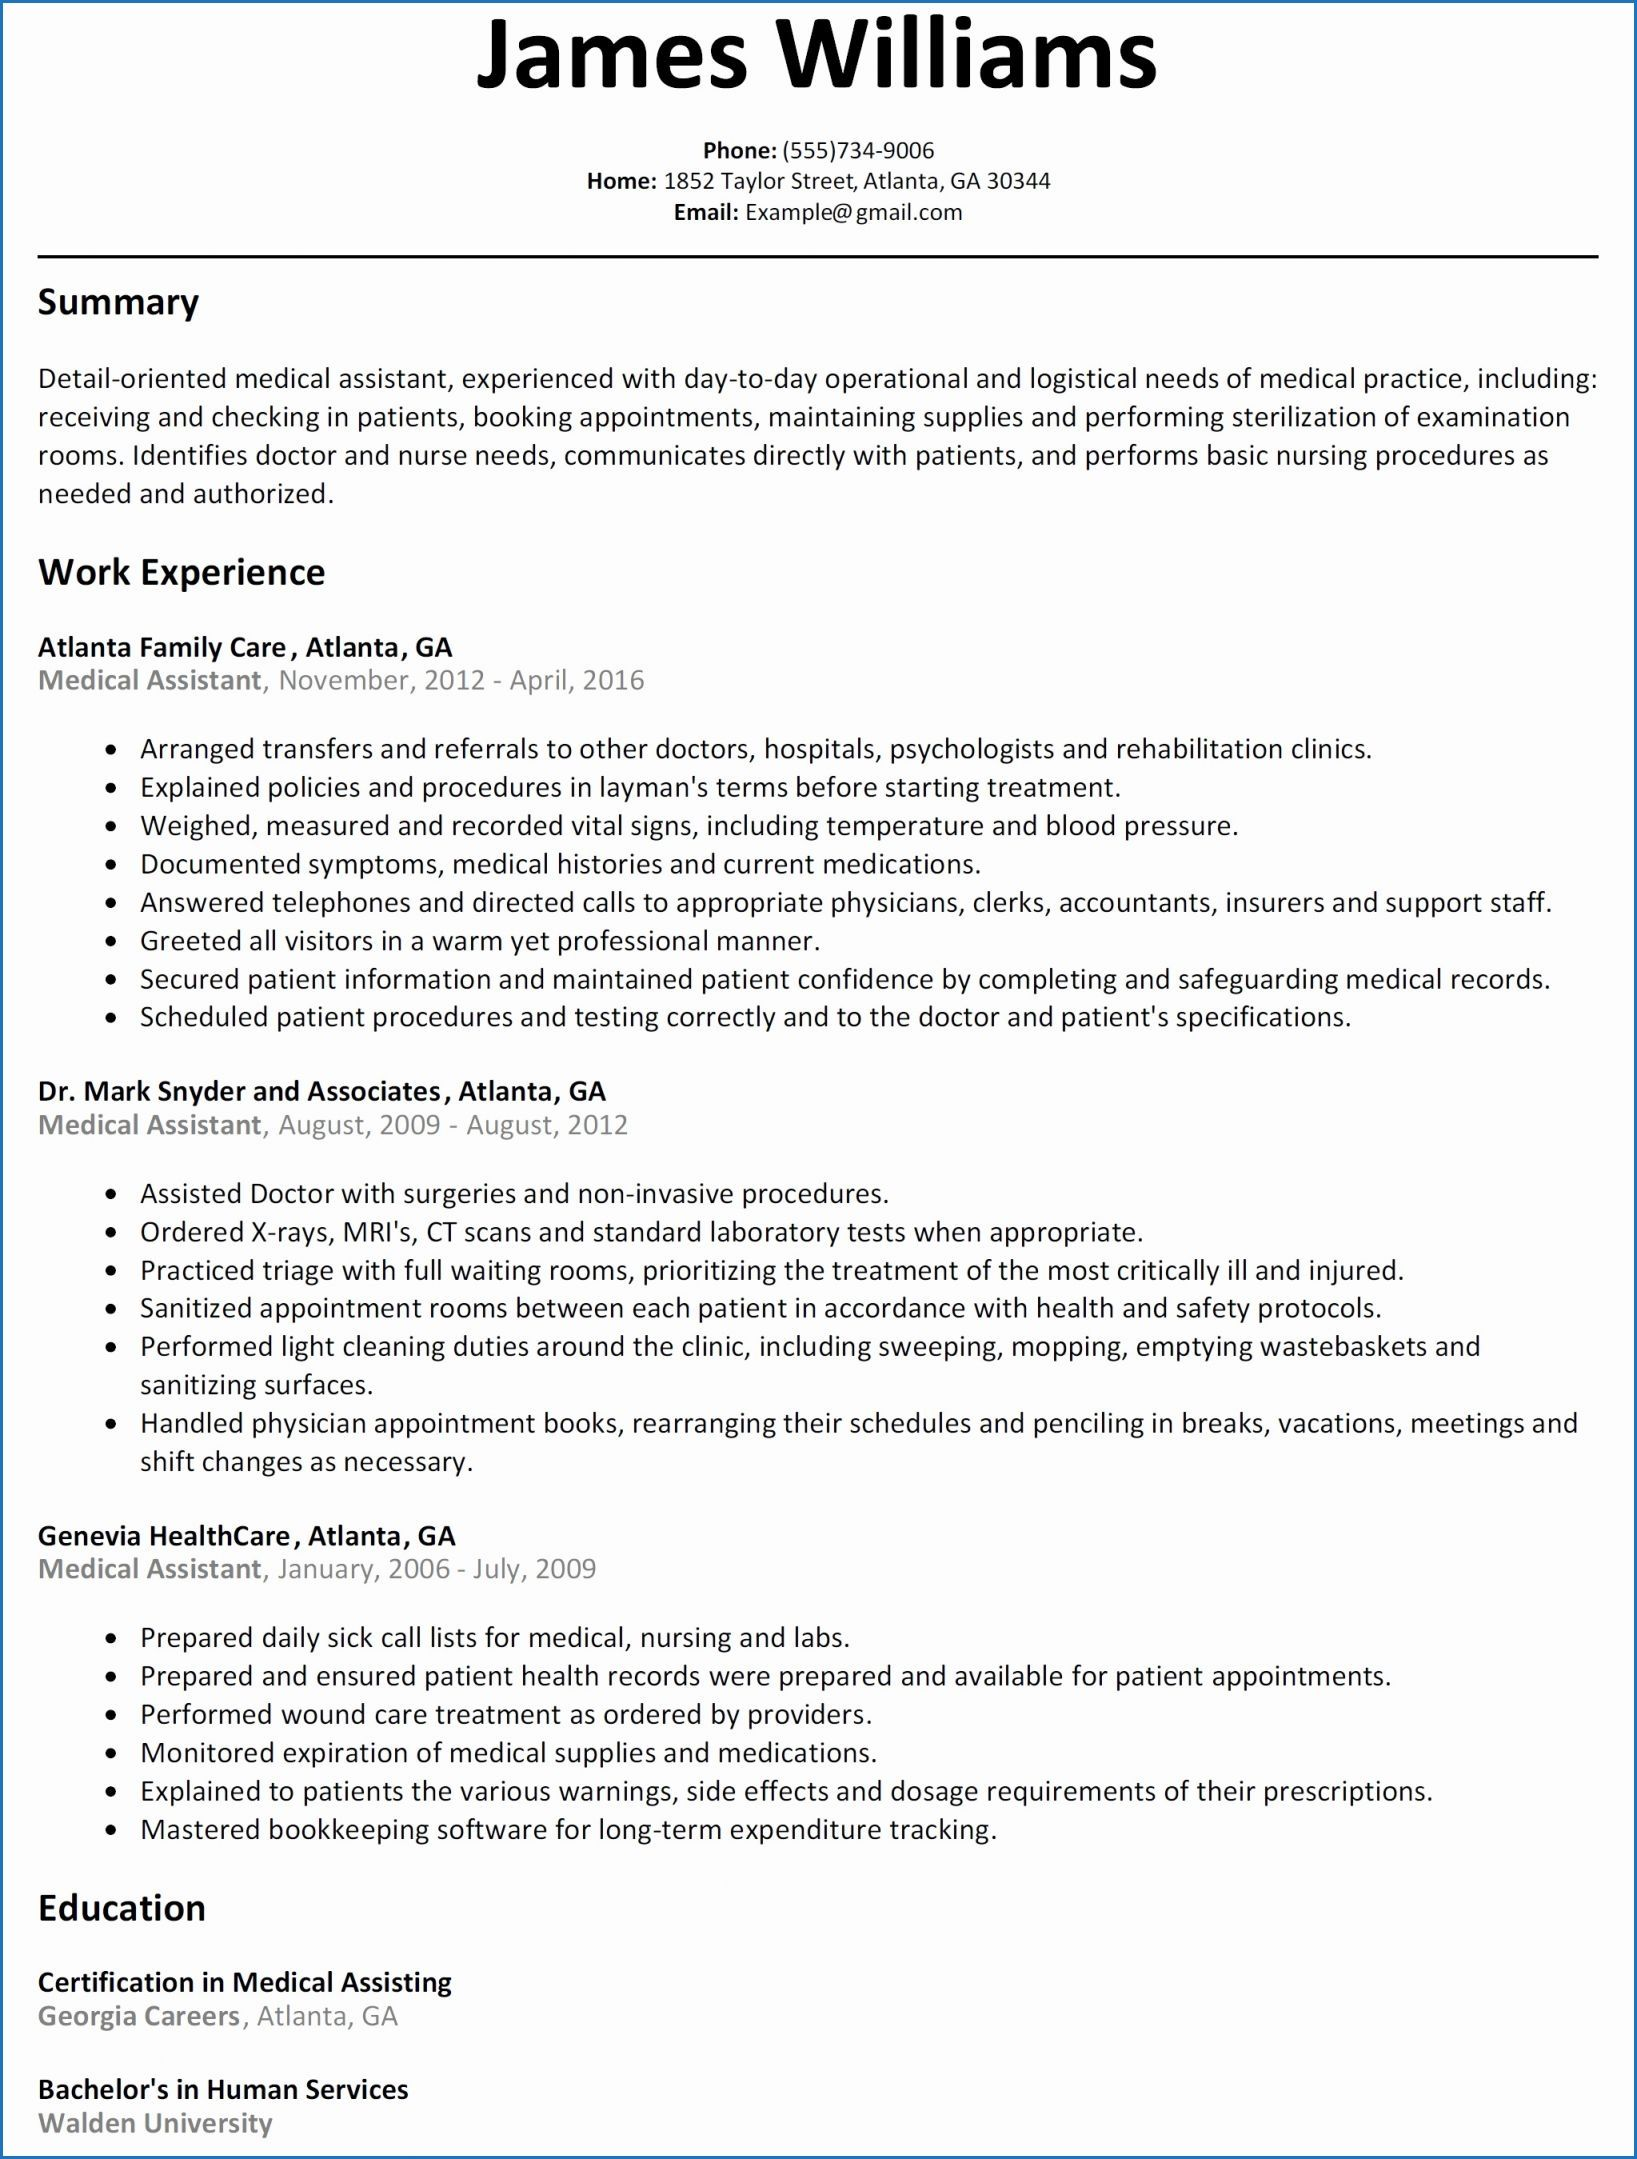 15 Sample Resume Professional Counselor Check More At Https Www Ortelle Org Sample Resume Professional Counselor Mendarat